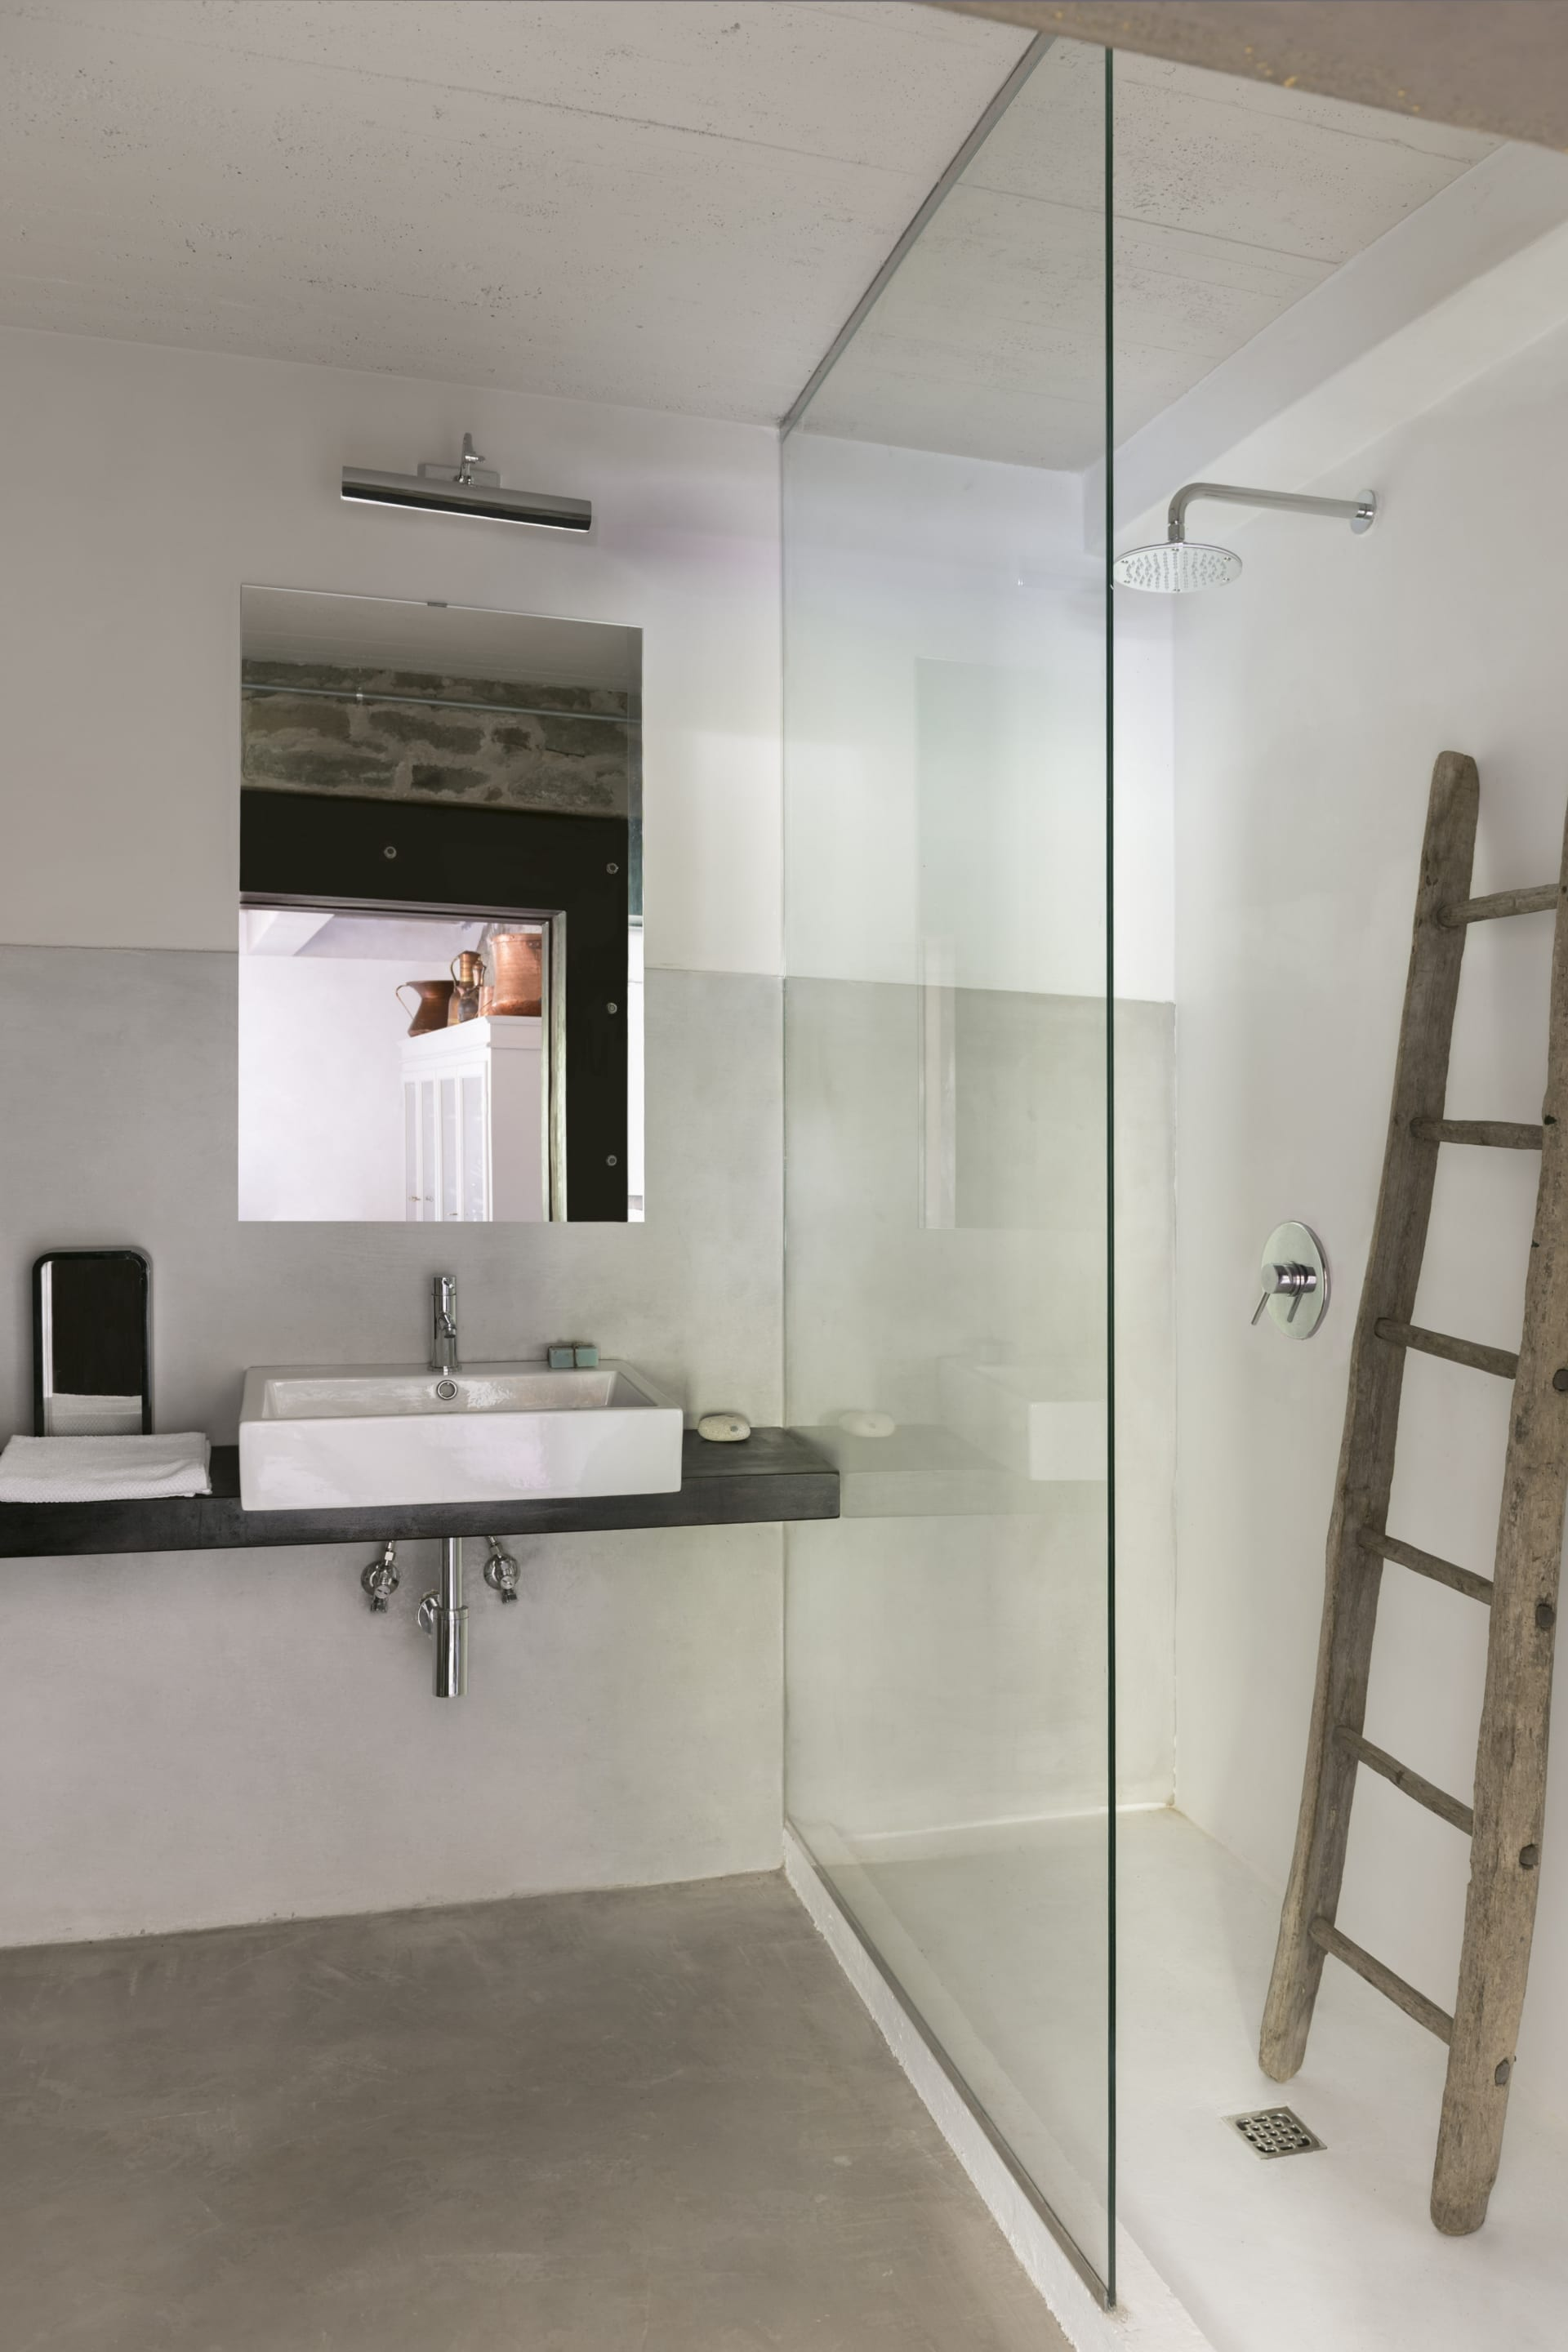 In the bathroom, concrete floor and resin walls. The old ladder serves as a towel rack, the sink rests on a large chestnut shelf.